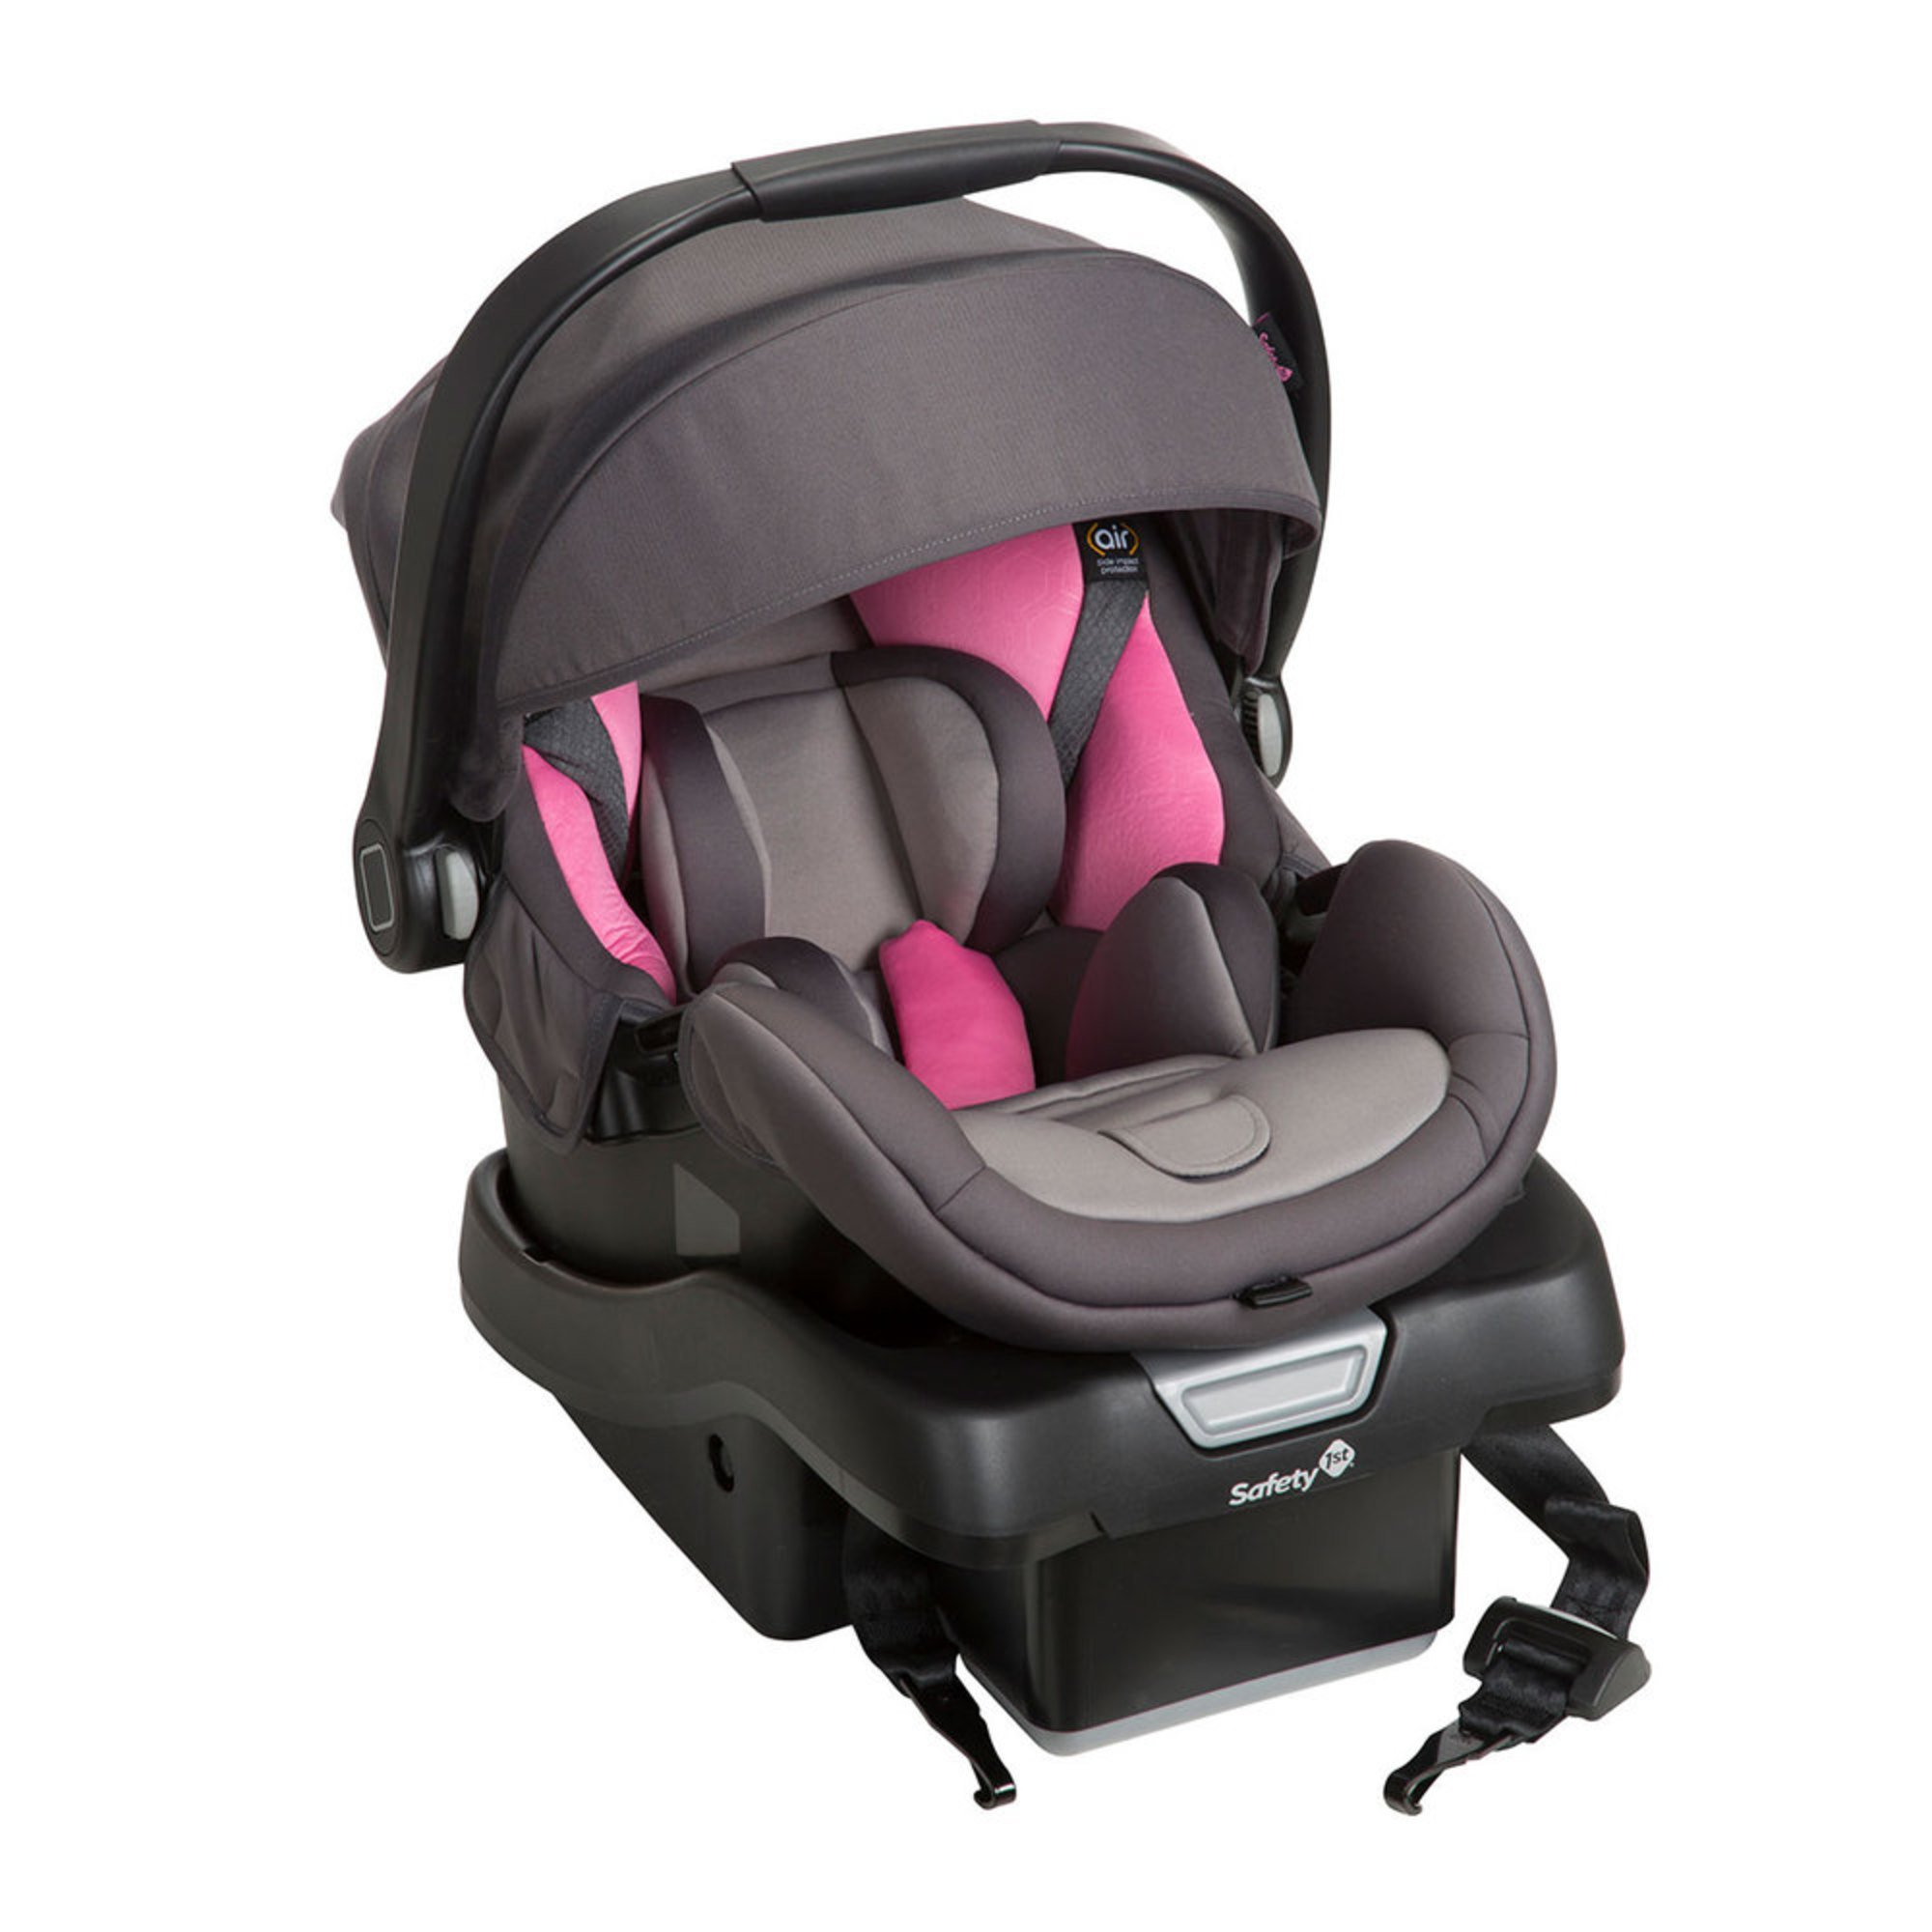 Safety 1st Onboard 35 Air 360 Infant Car Seat Search Results Parent Category Shop Your Navy Exchange